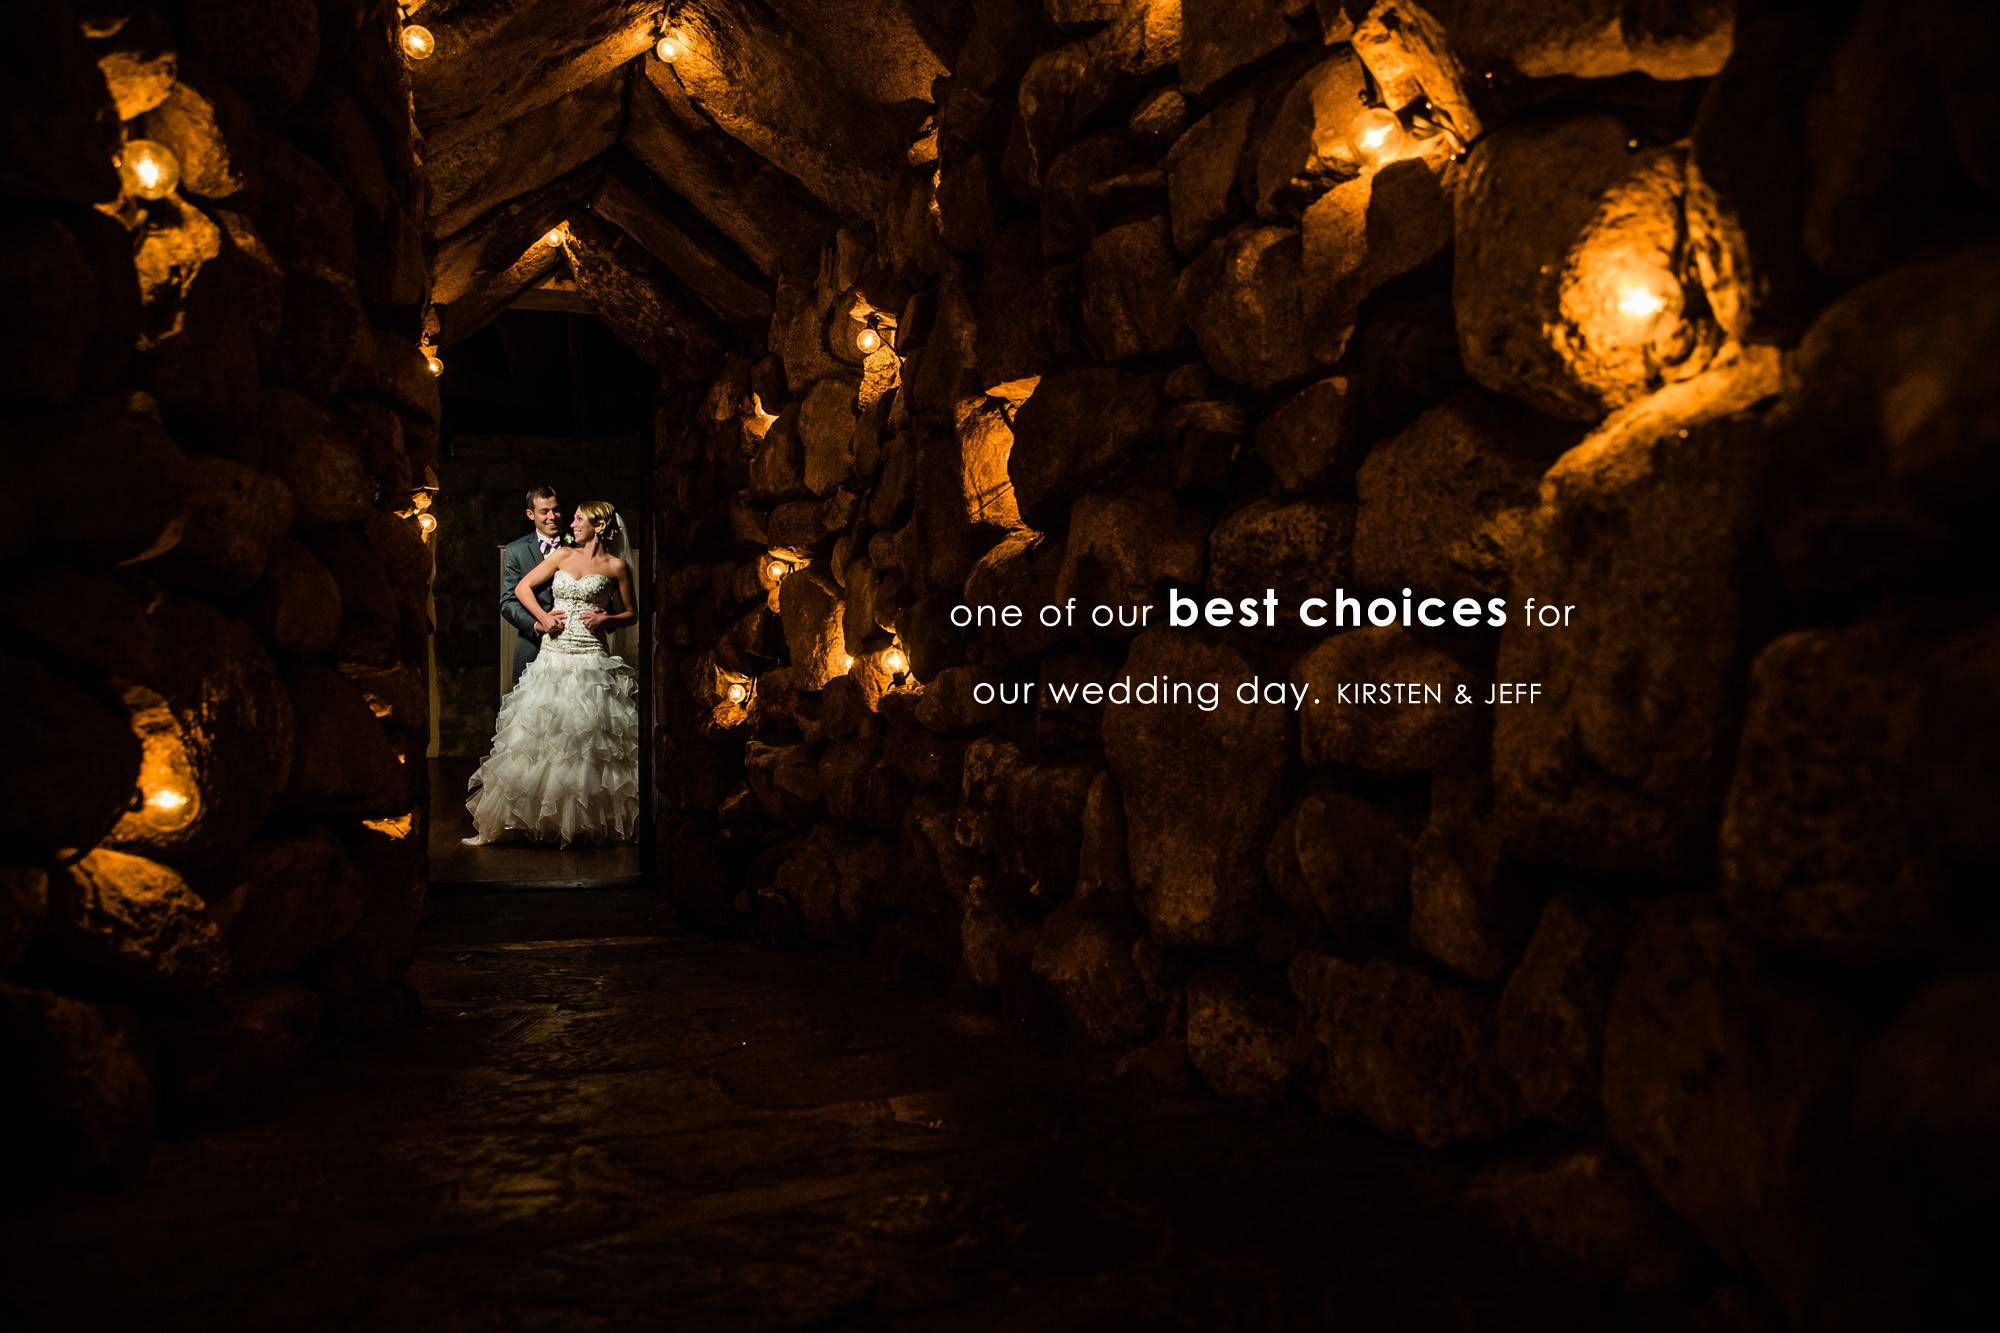 A creative wedding day portrait of a bride and groom at The Cave at the Mount Washington Hotel by NH wedding Photographer Eric McCallister Photography.